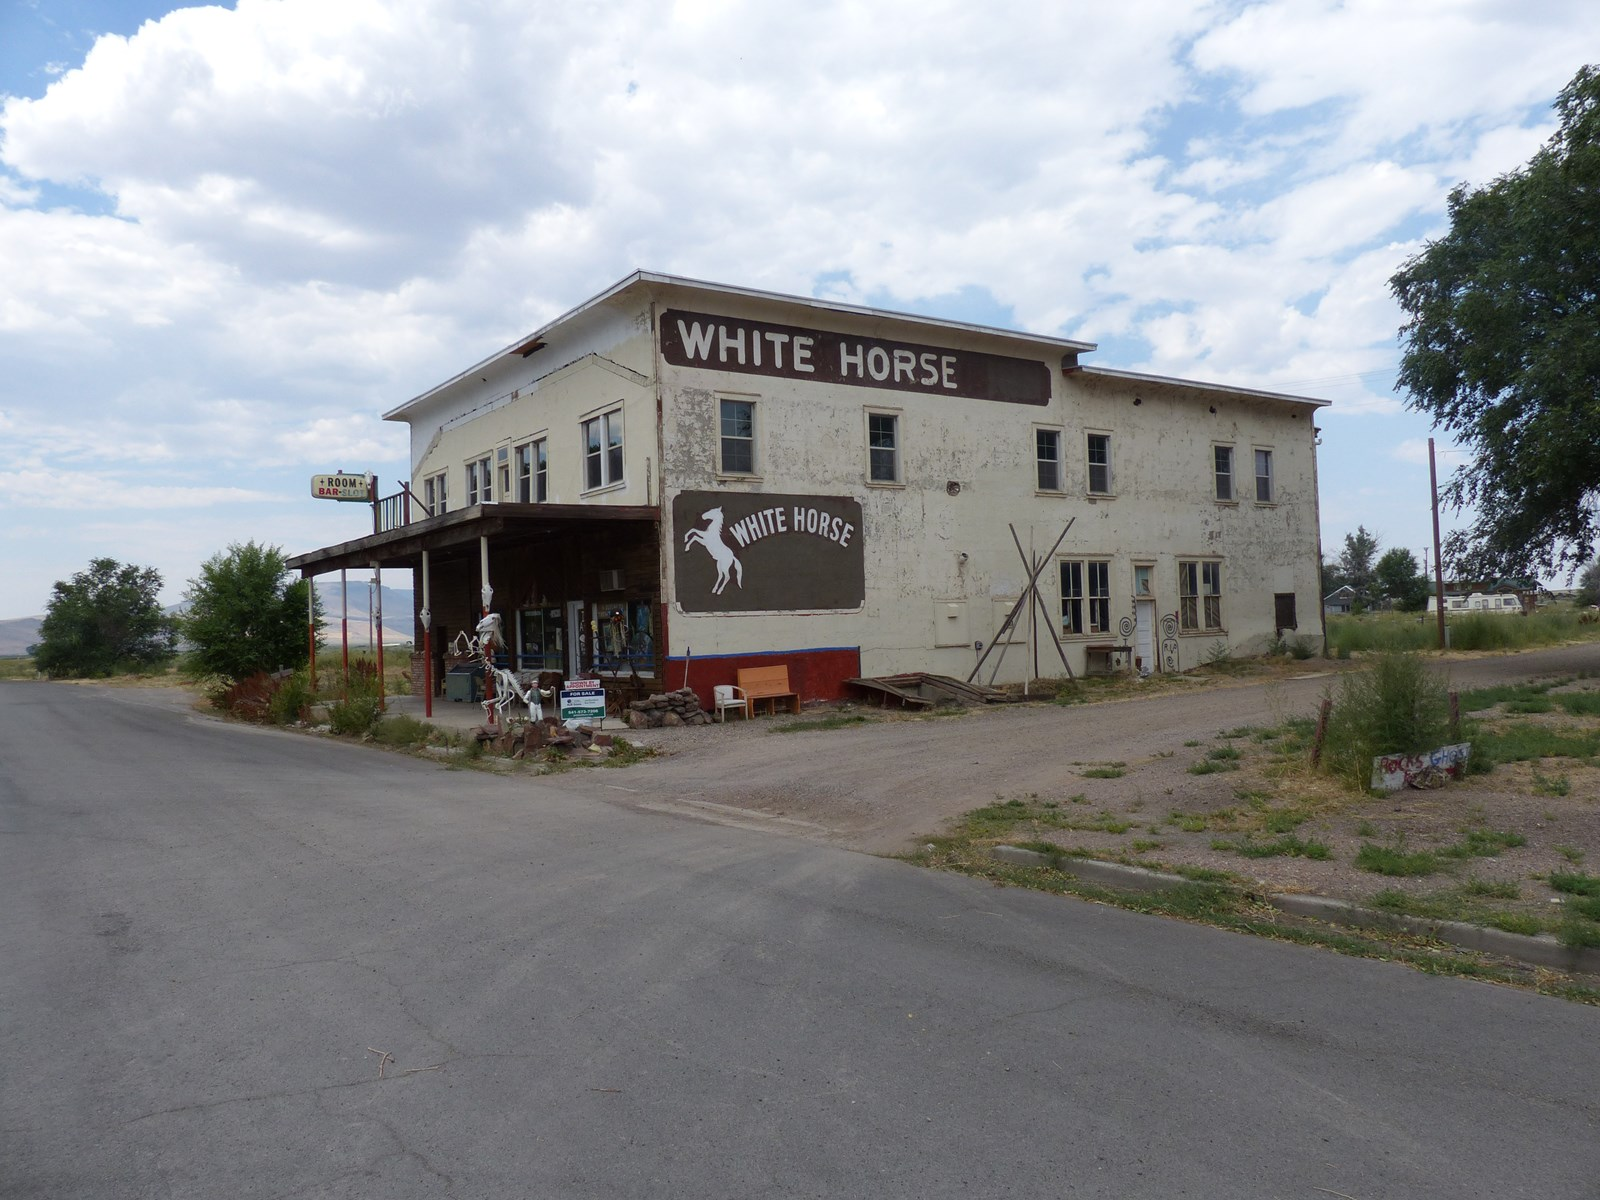 OREGON/NEVADA - HISTORIC WHITE HORSE INN ON 5.45 ACRES